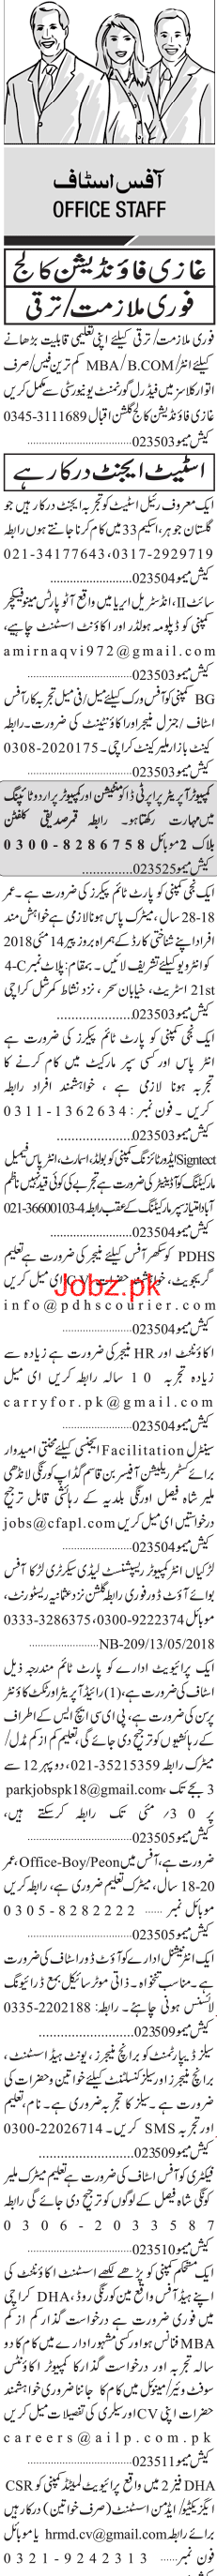 Diploma Holders, General Manager, Accountant Job Opportunity